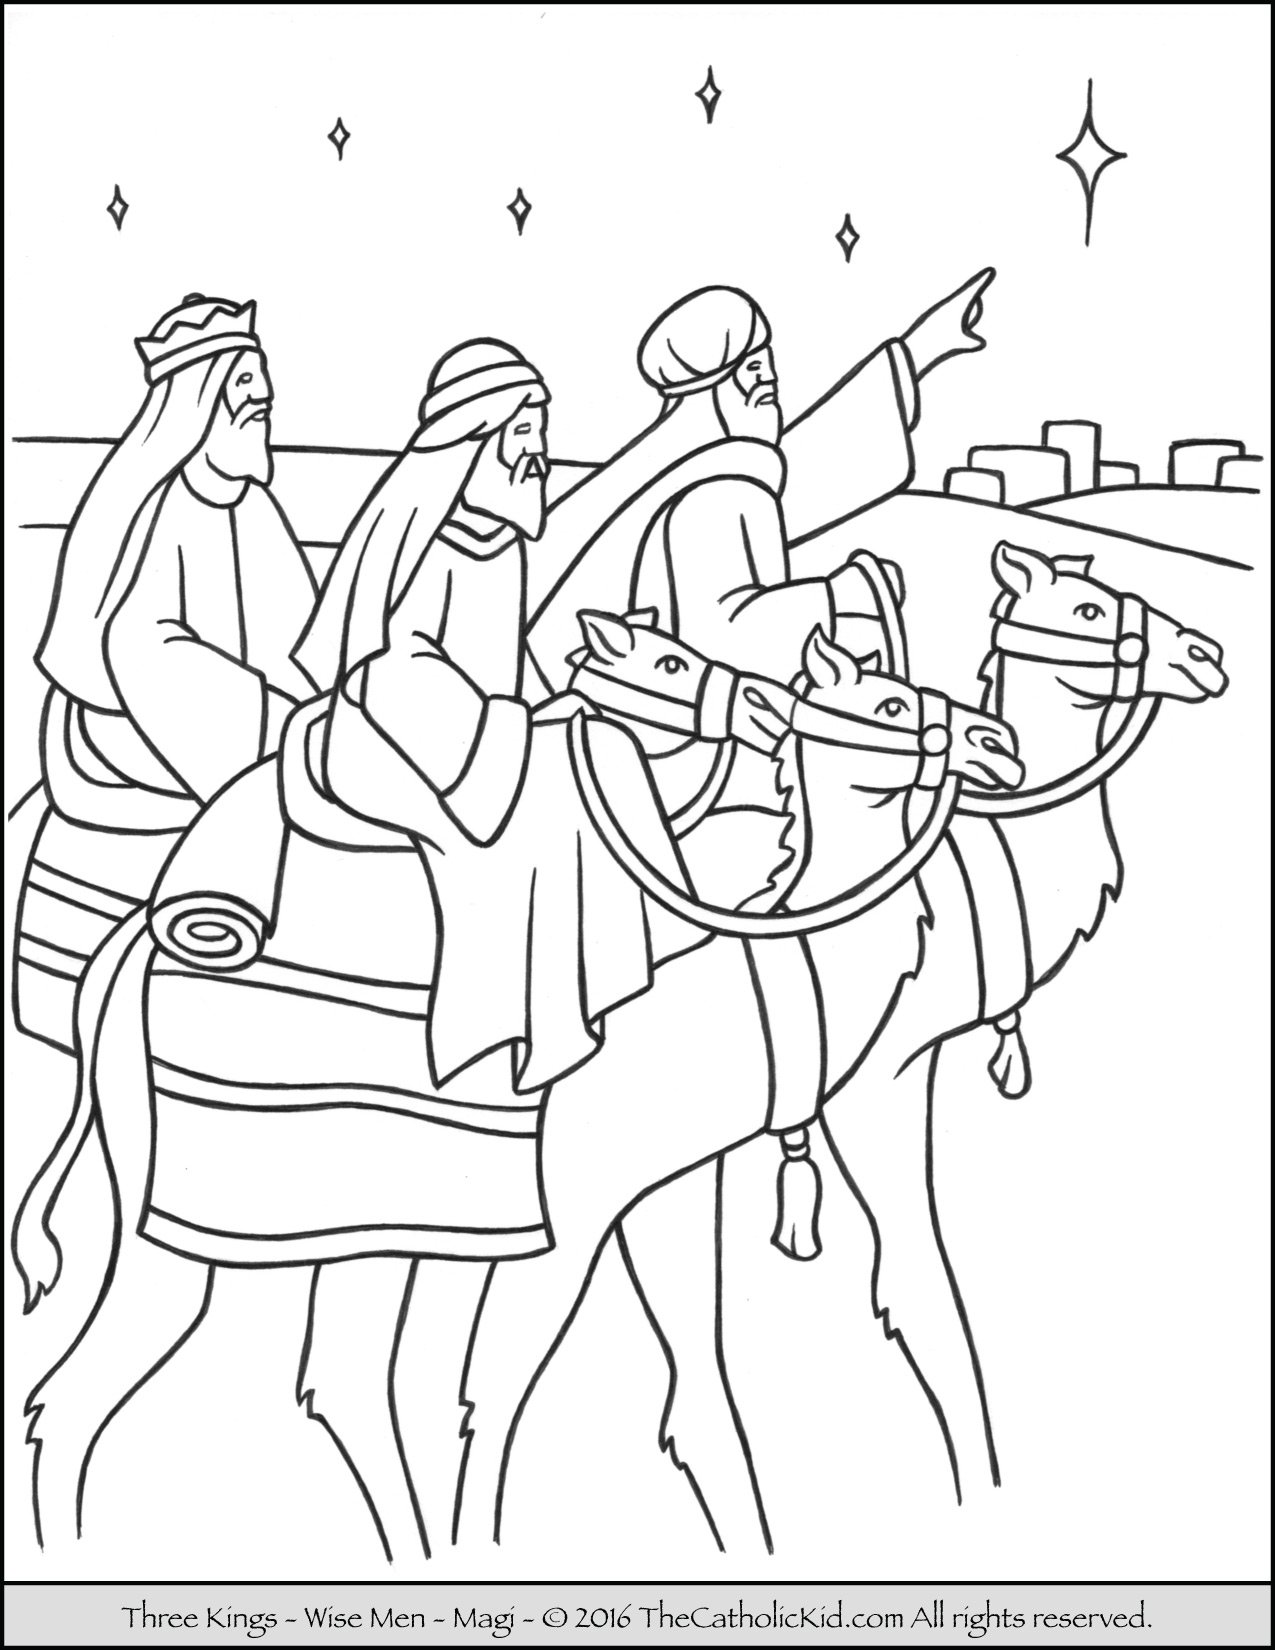 Epiphany - Catholic Coloring Pages - The Catholic Kid